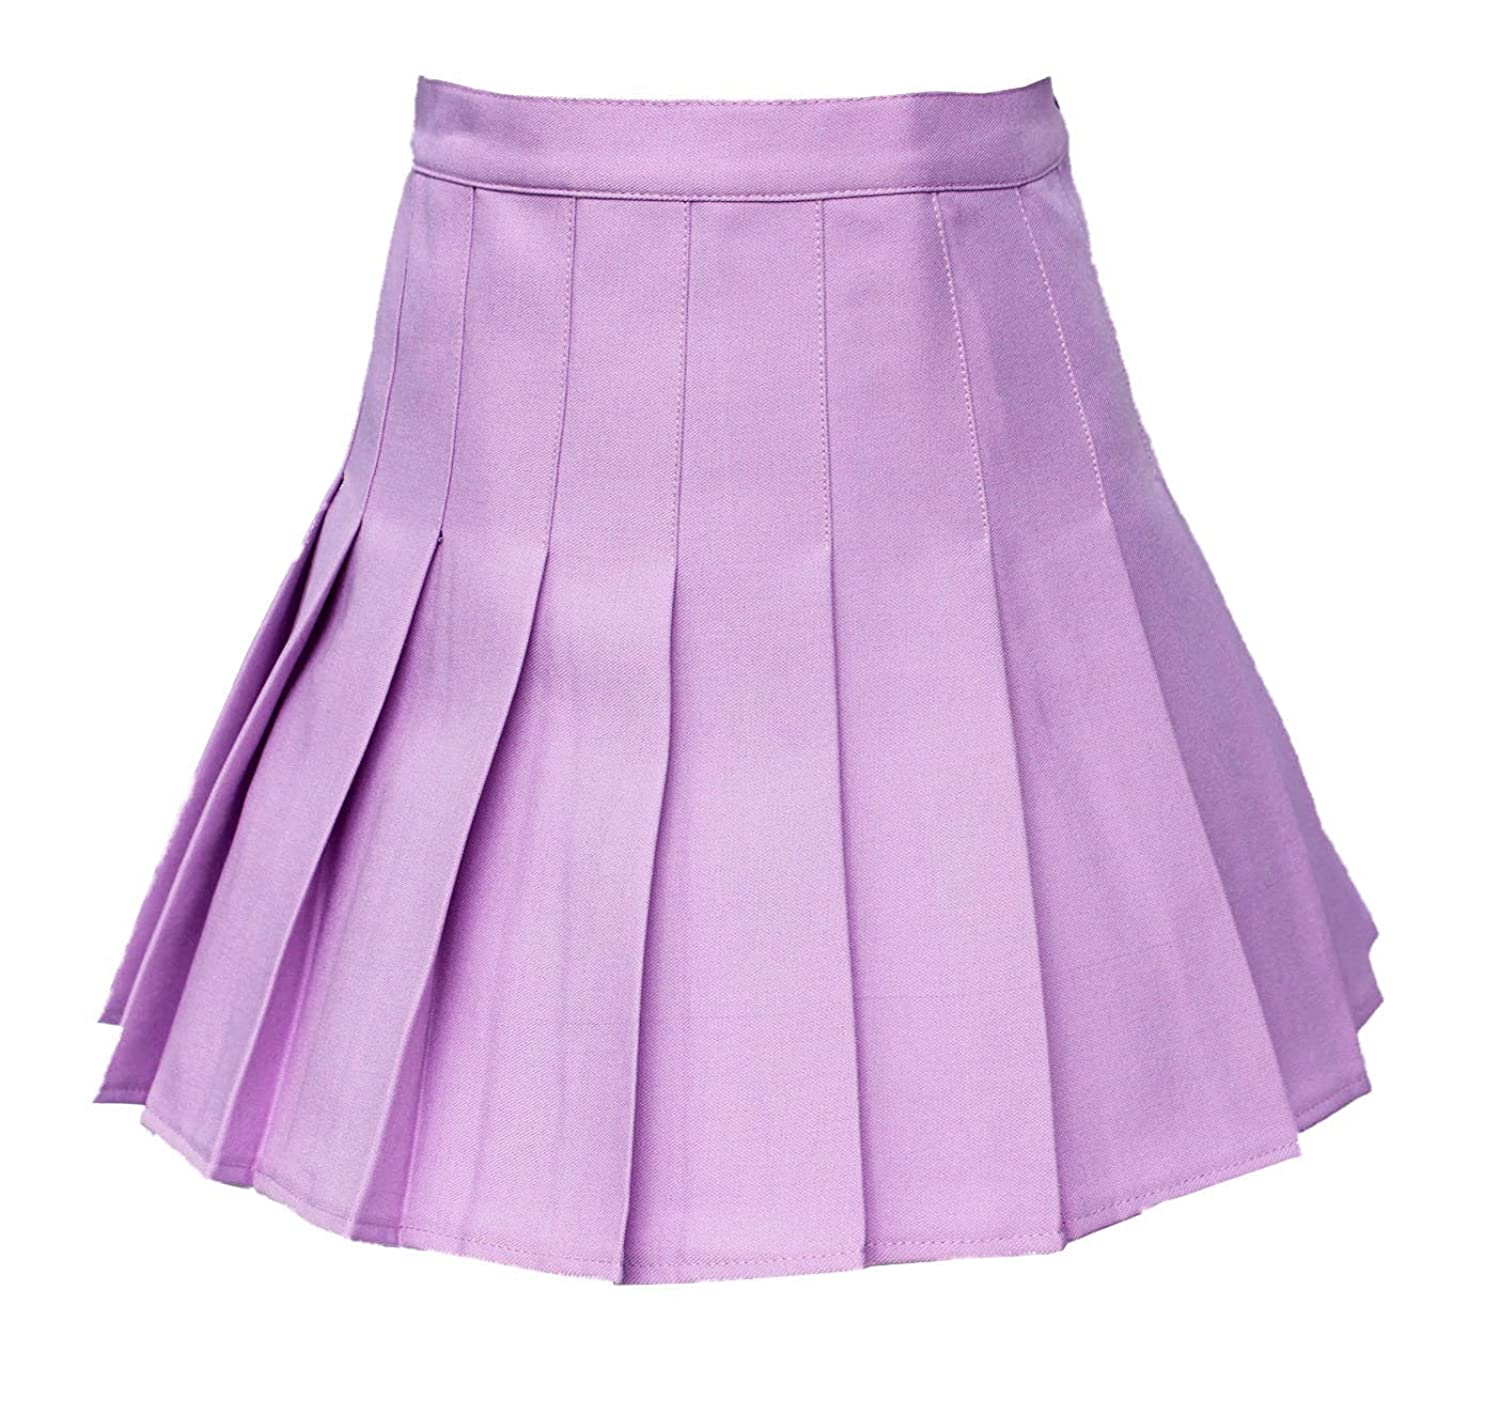 Ejiddg Women High waisted Solid Pleated Mini Tennis Skorts Or Skirt 13 Colors 2 Styles Purple S